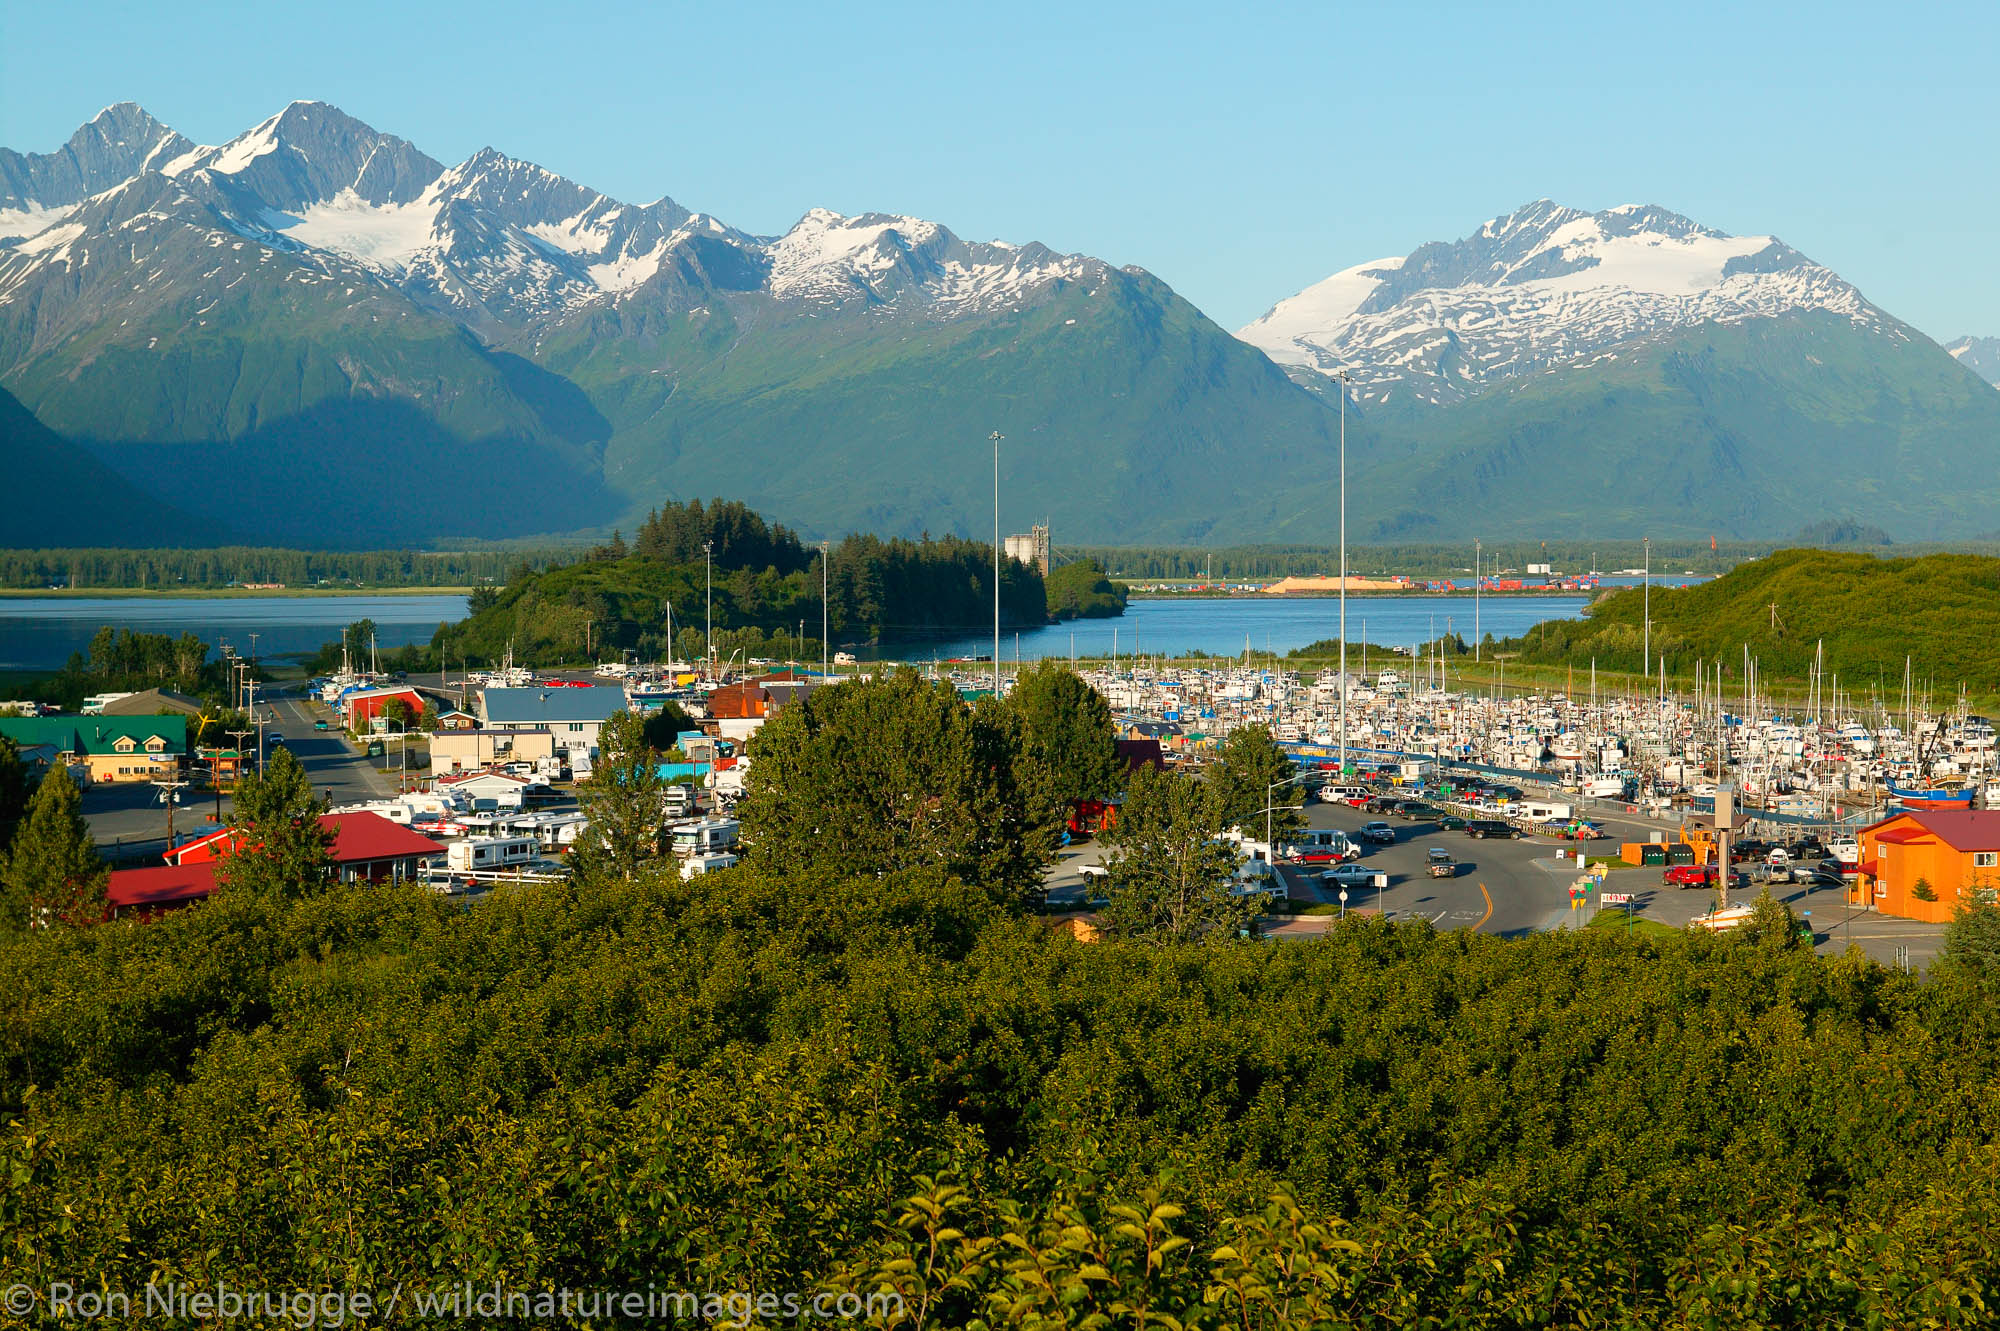 View from the overlook trail, Valdez, Alaska.